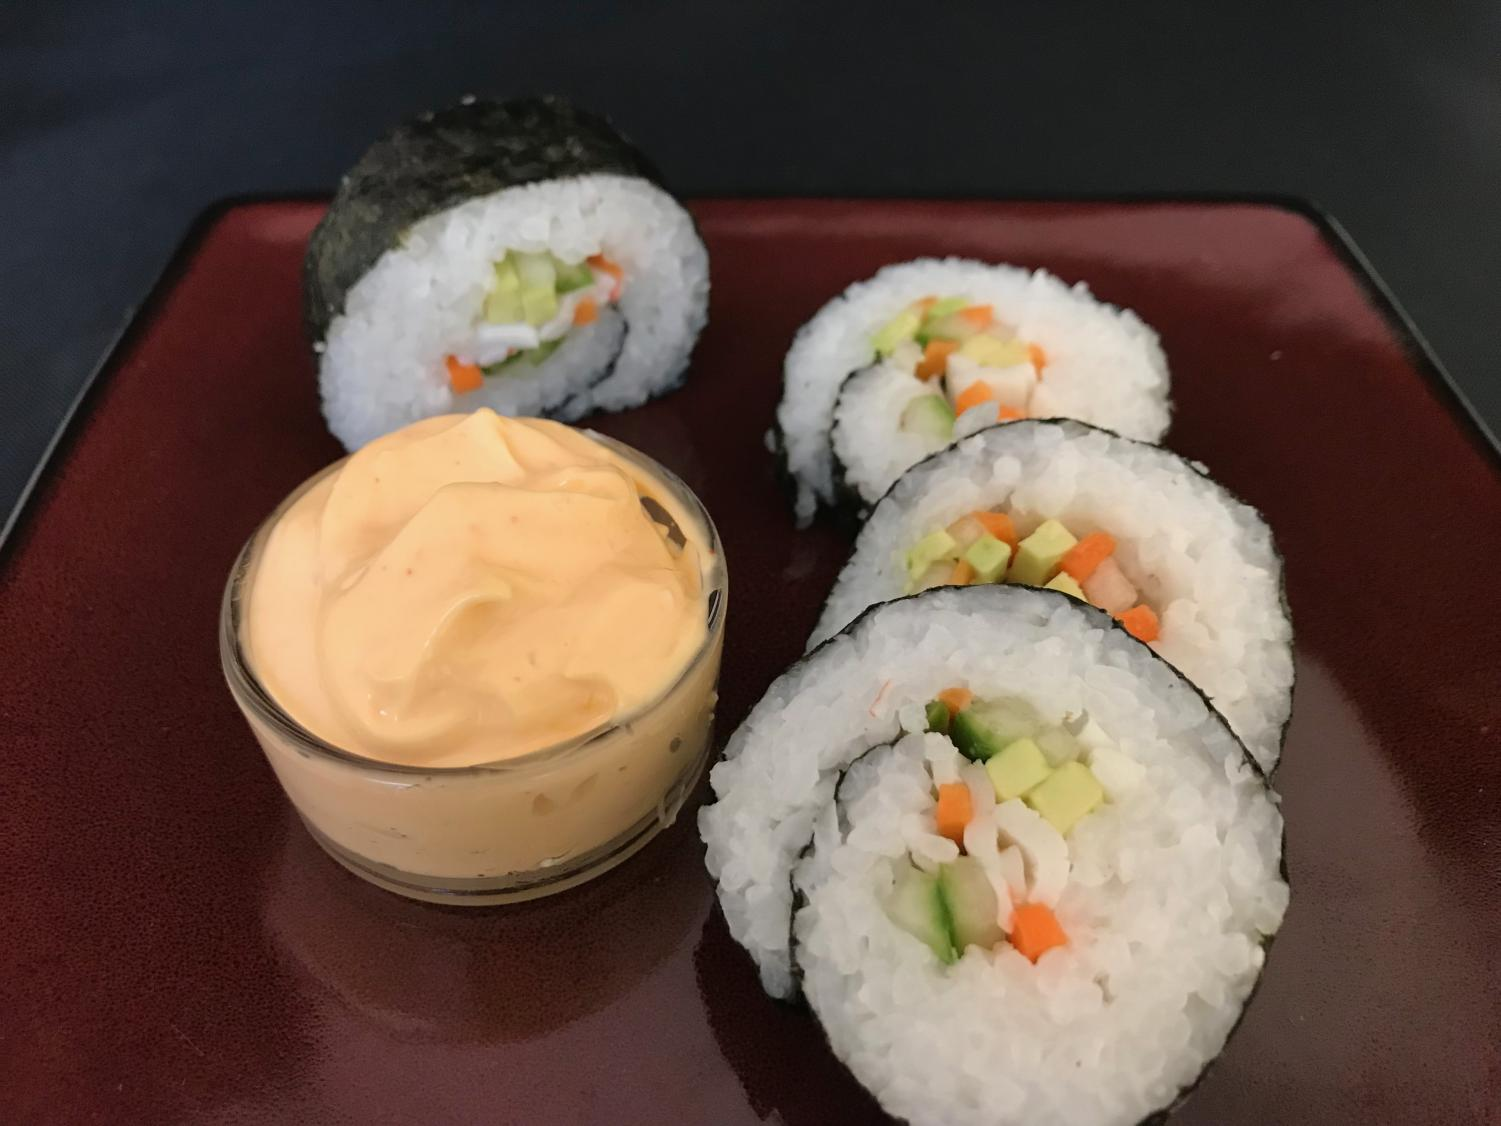 California+sushi+rolls+with+spicy+mayo